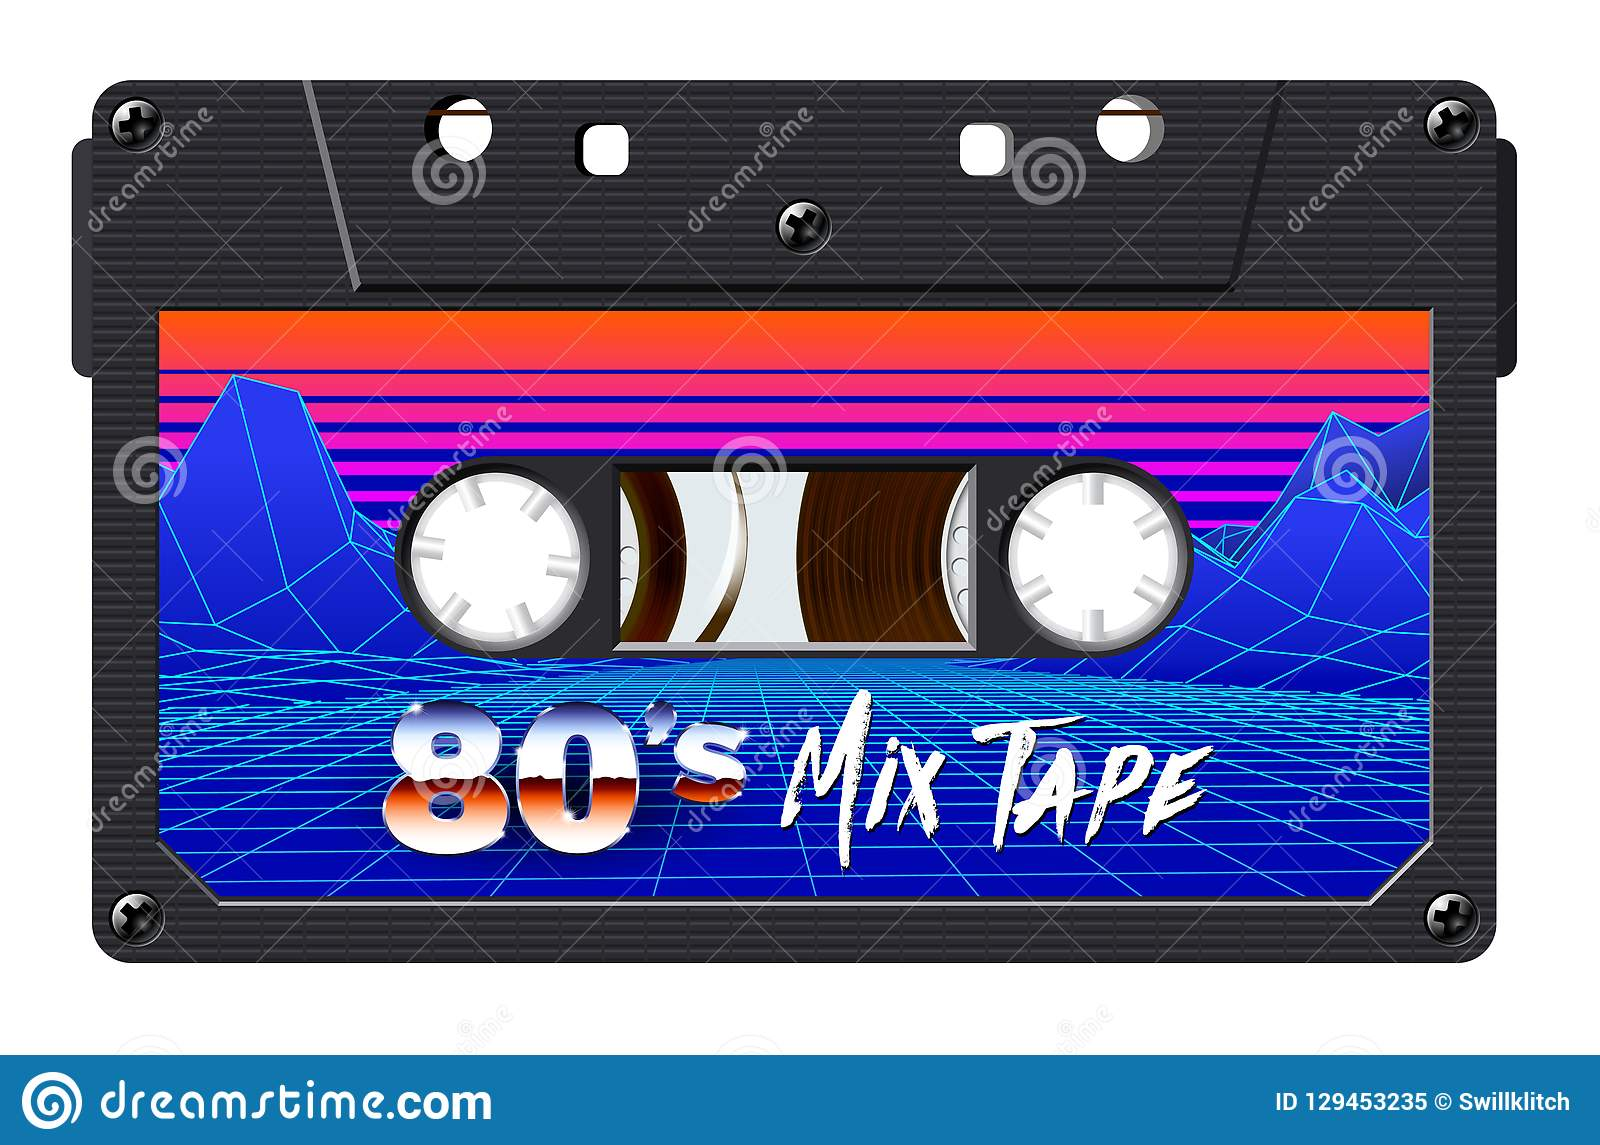 Cassette With Retro Label As Vintage Object For 80s Revival Mix Tape